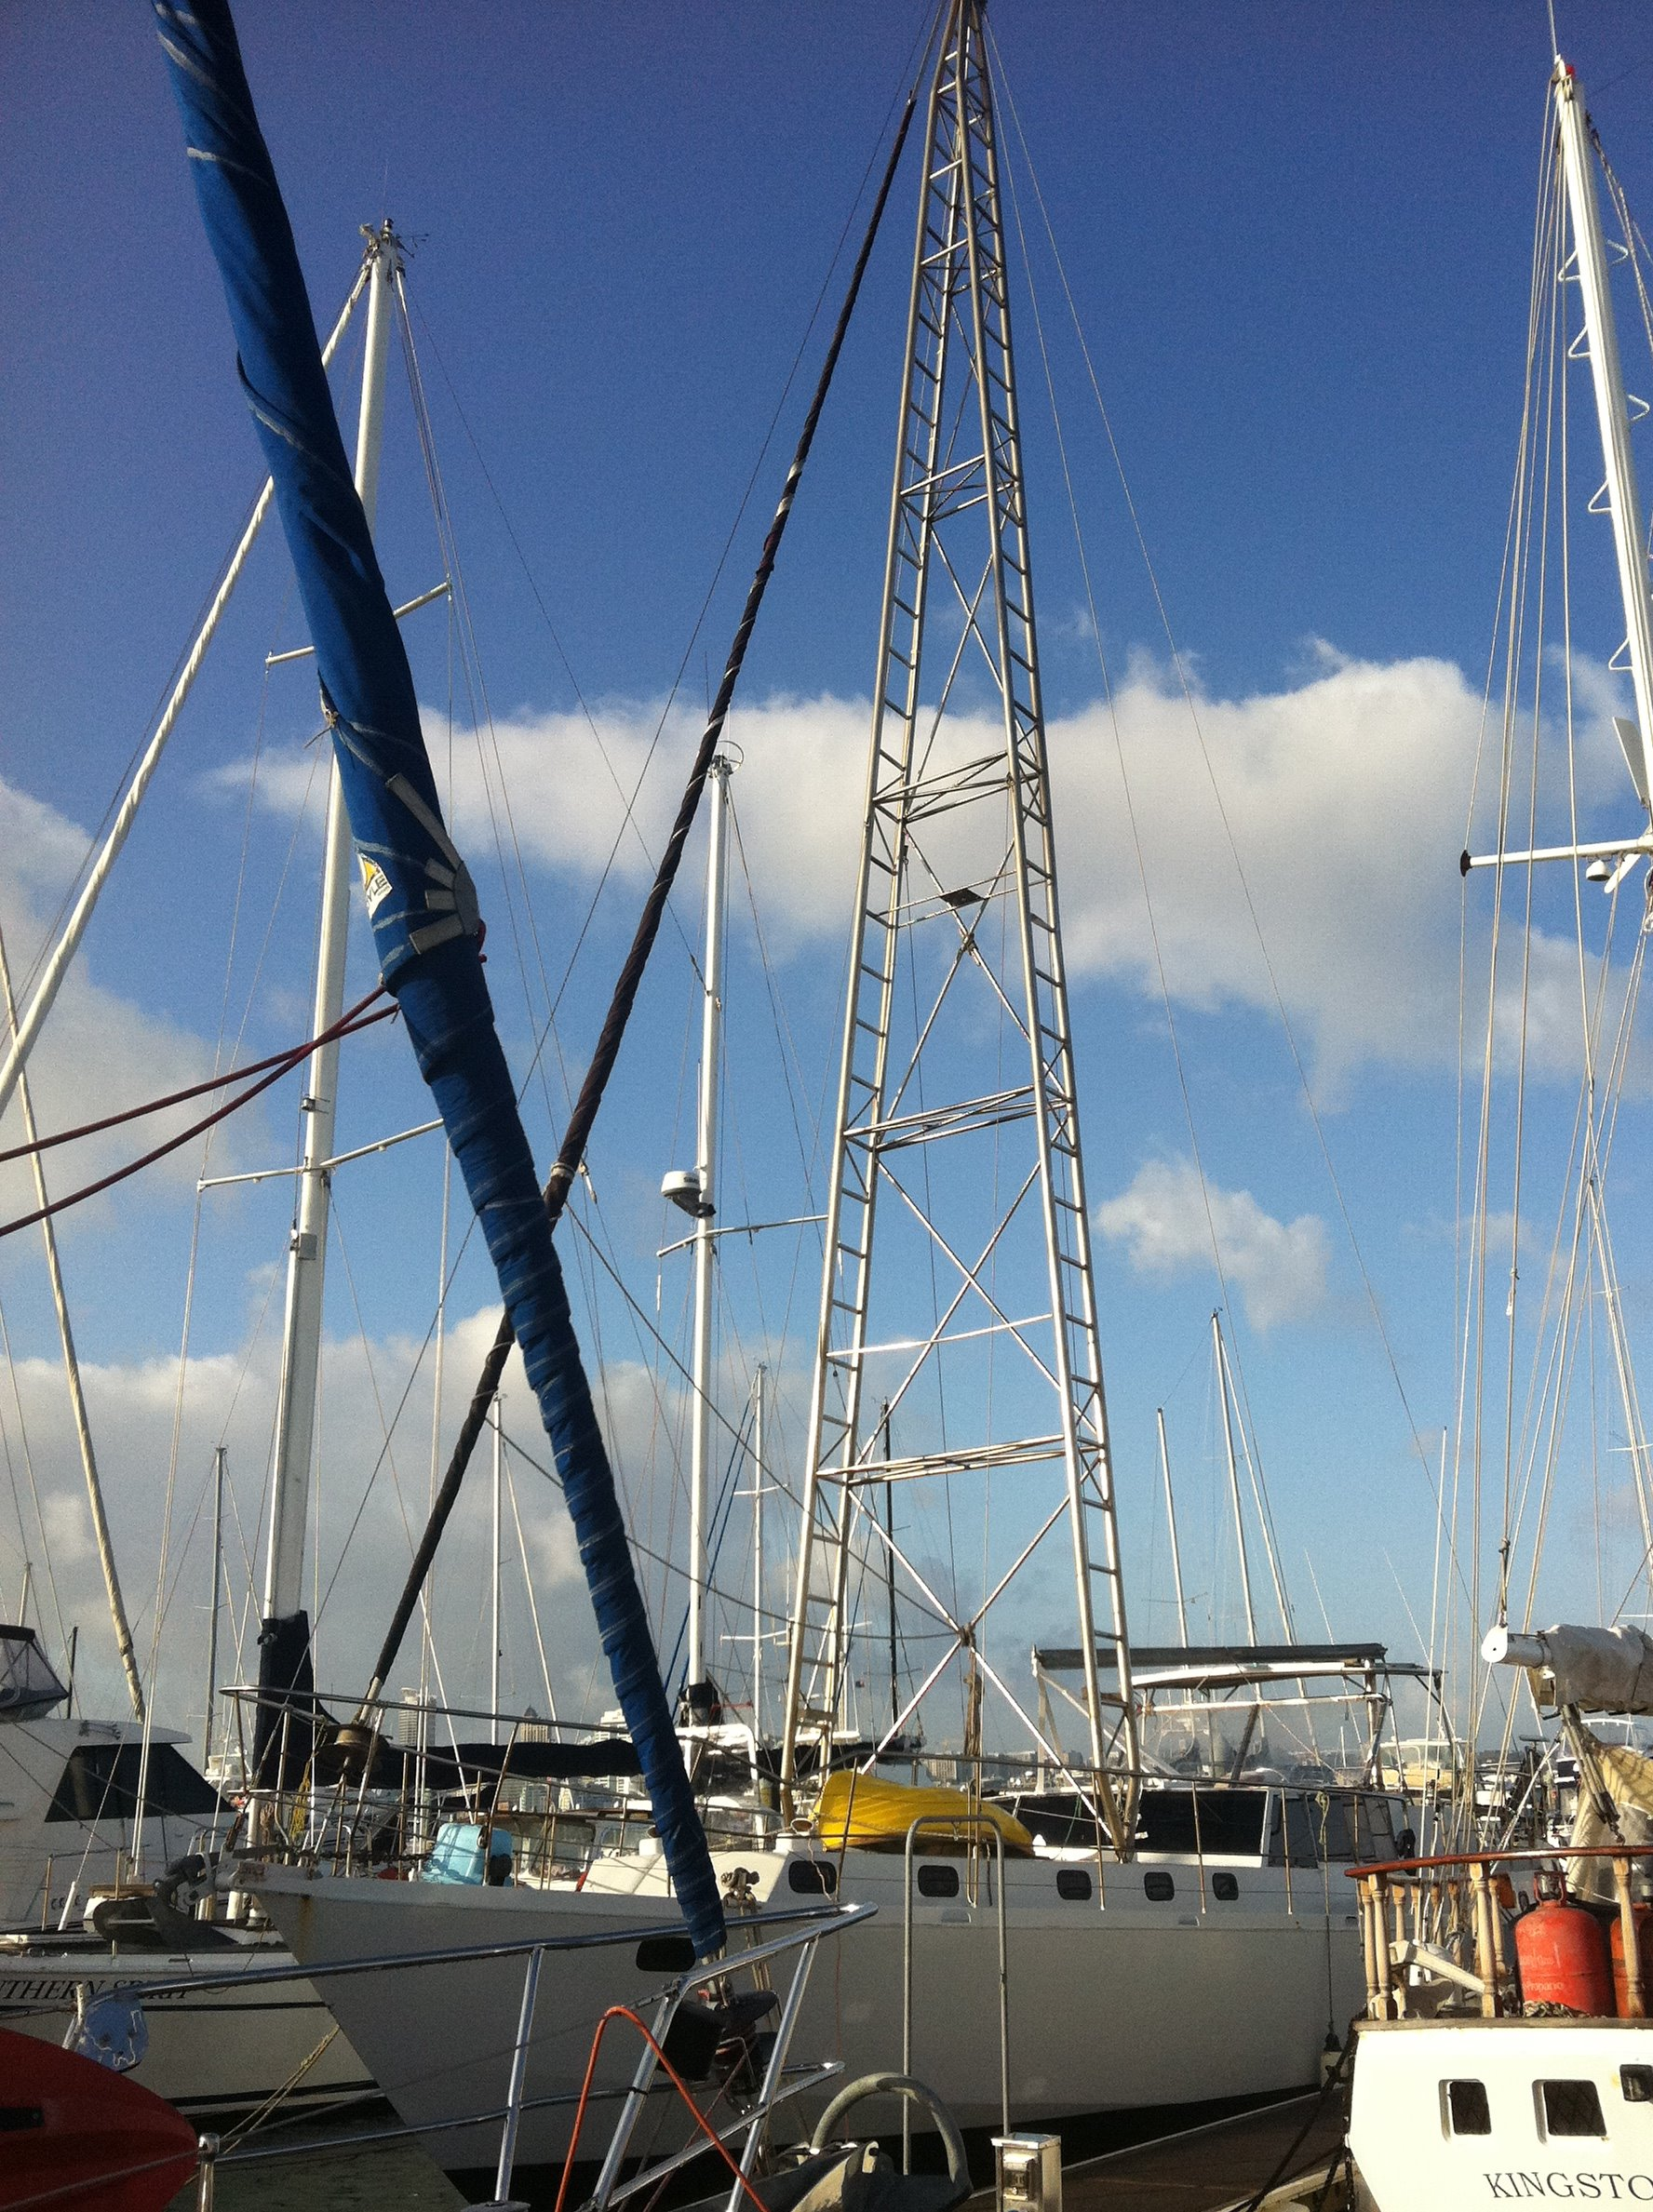 sailboat with strange rigging and mast tower